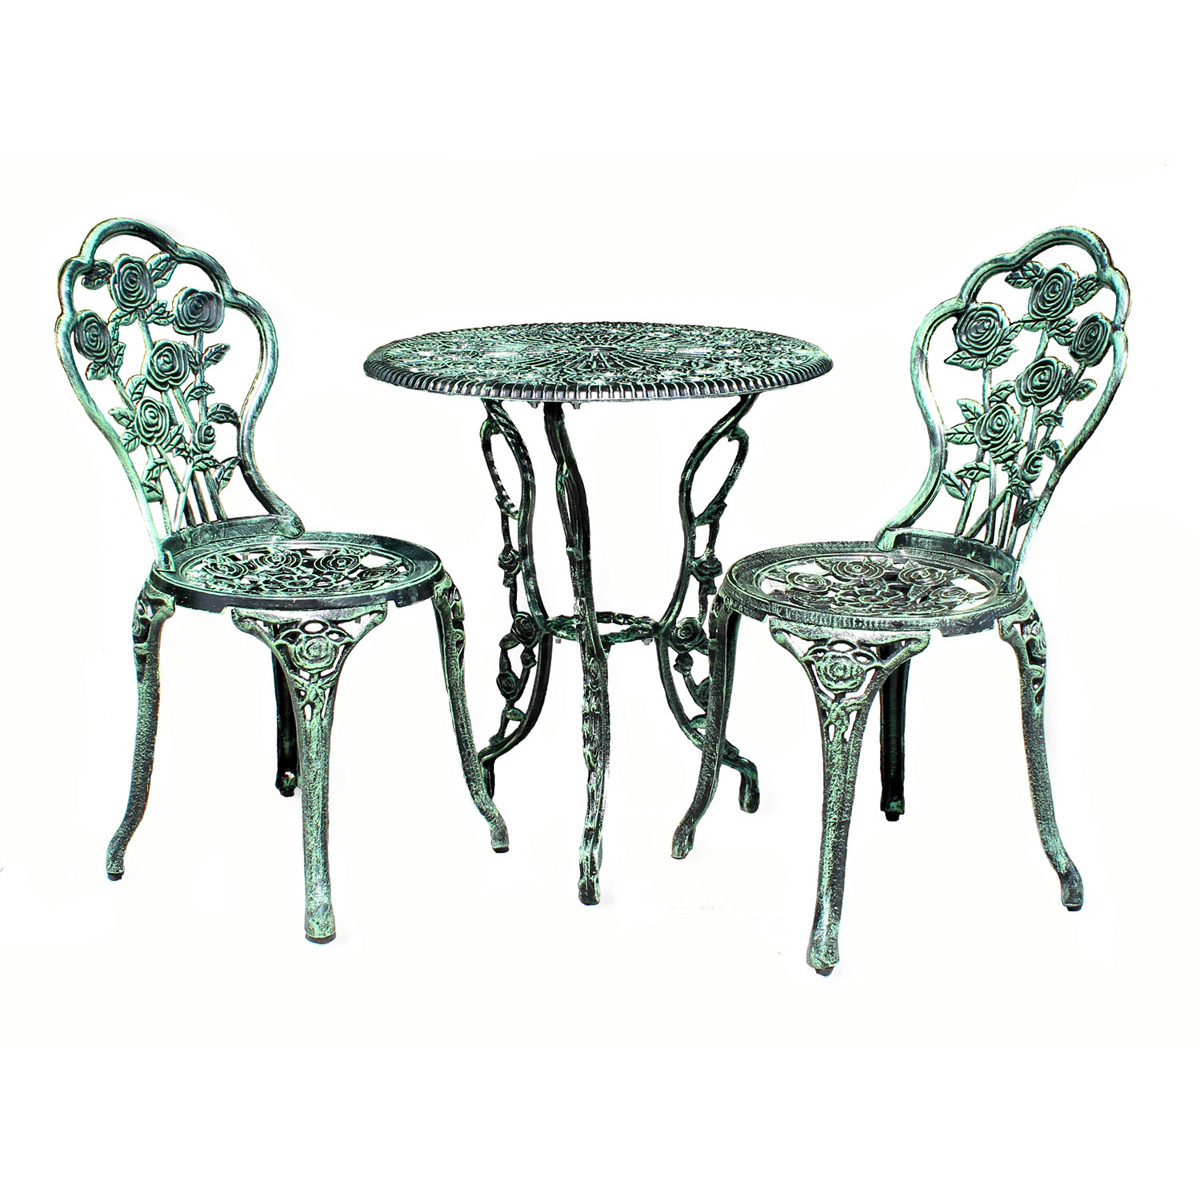 table 2 chairs bench antique white green bistro set garden sofa aluminium cast ebay. Black Bedroom Furniture Sets. Home Design Ideas